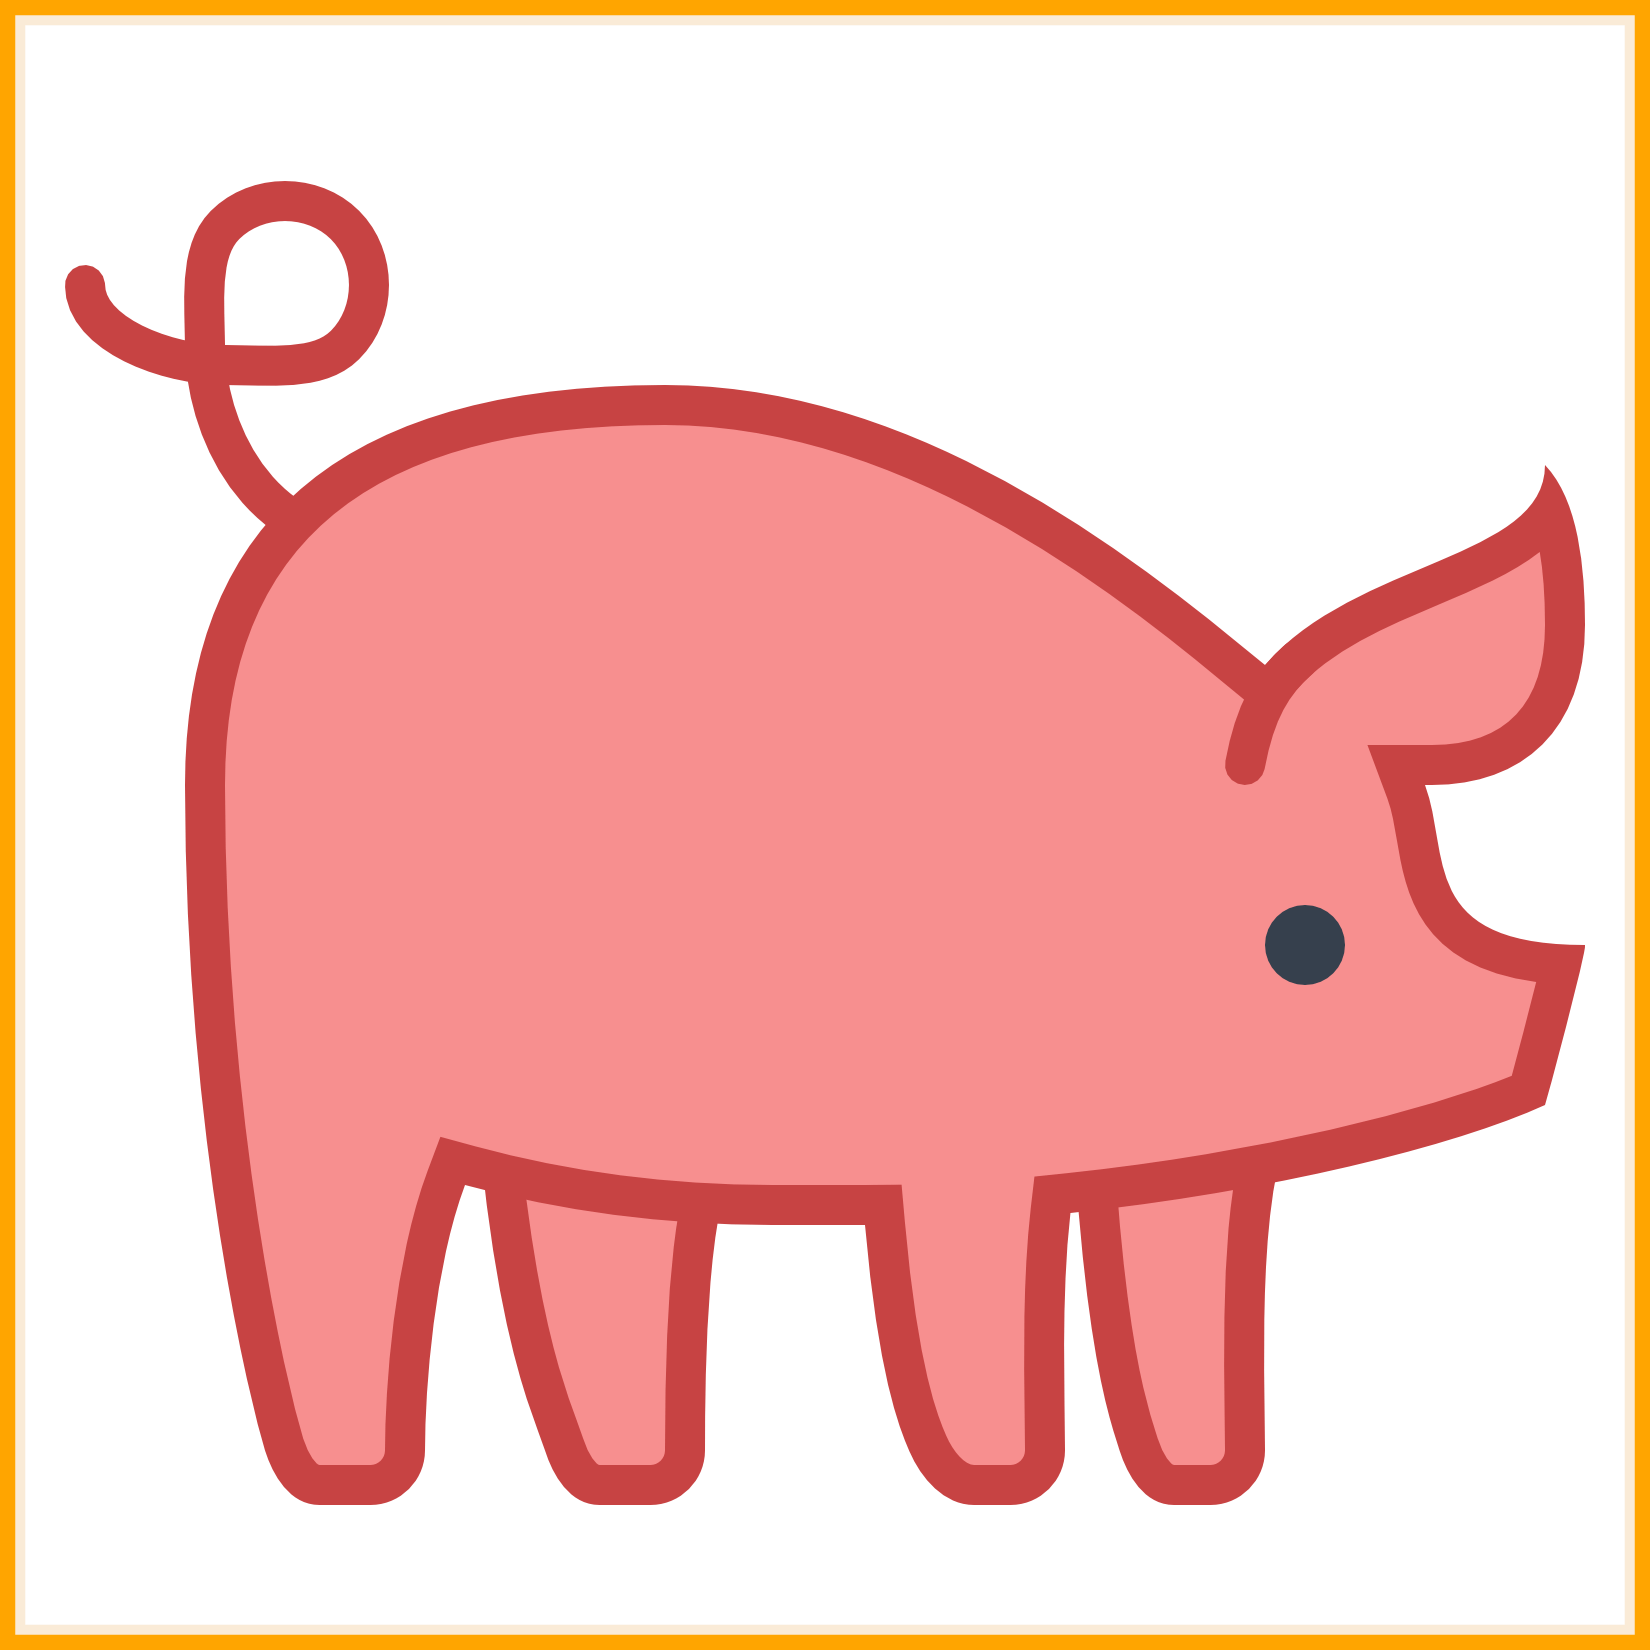 Cute piggy bank clipart image freeuse library Cute Pig Clipart at GetDrawings.com | Free for personal use Cute Pig ... image freeuse library